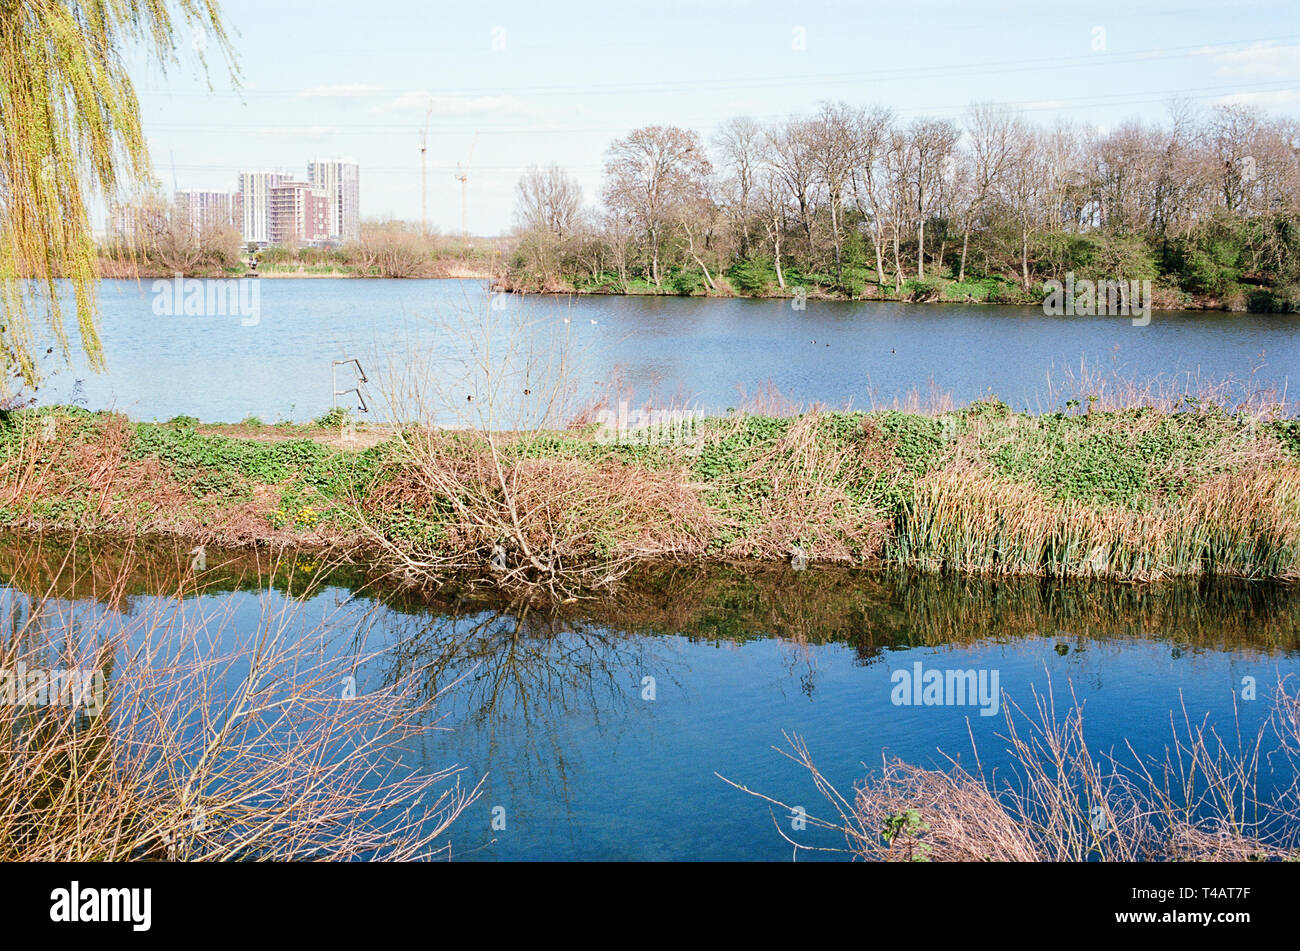 Walthamstow Wetlands, North East London UK, in springtime, with the Coppermill Stream, Reservoir No1, and apartment buildings in the distance - Stock Image